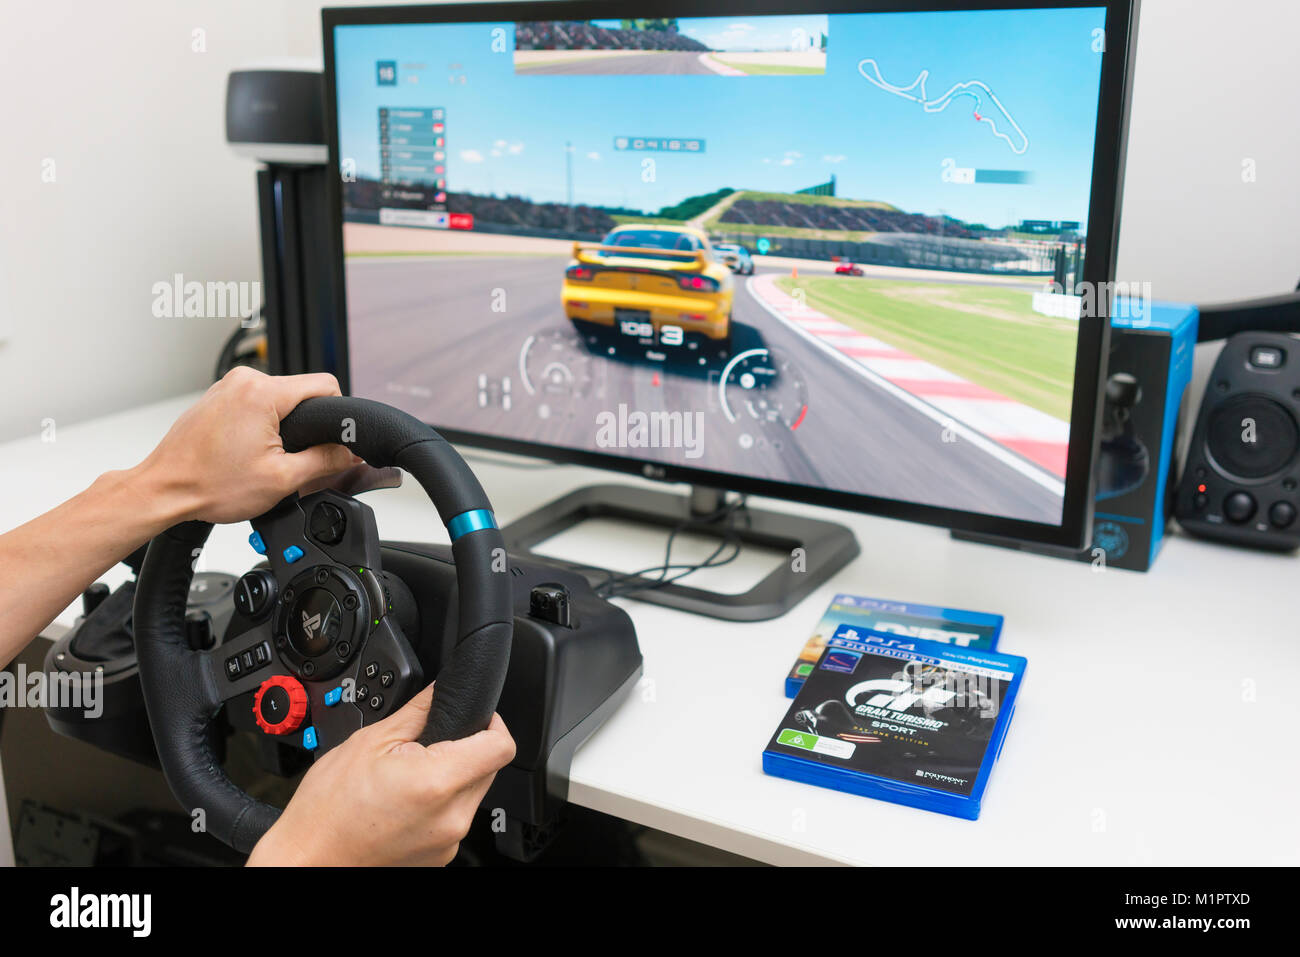 Playing Racing Video Game At Home Stock Photo 173220837 Alamy